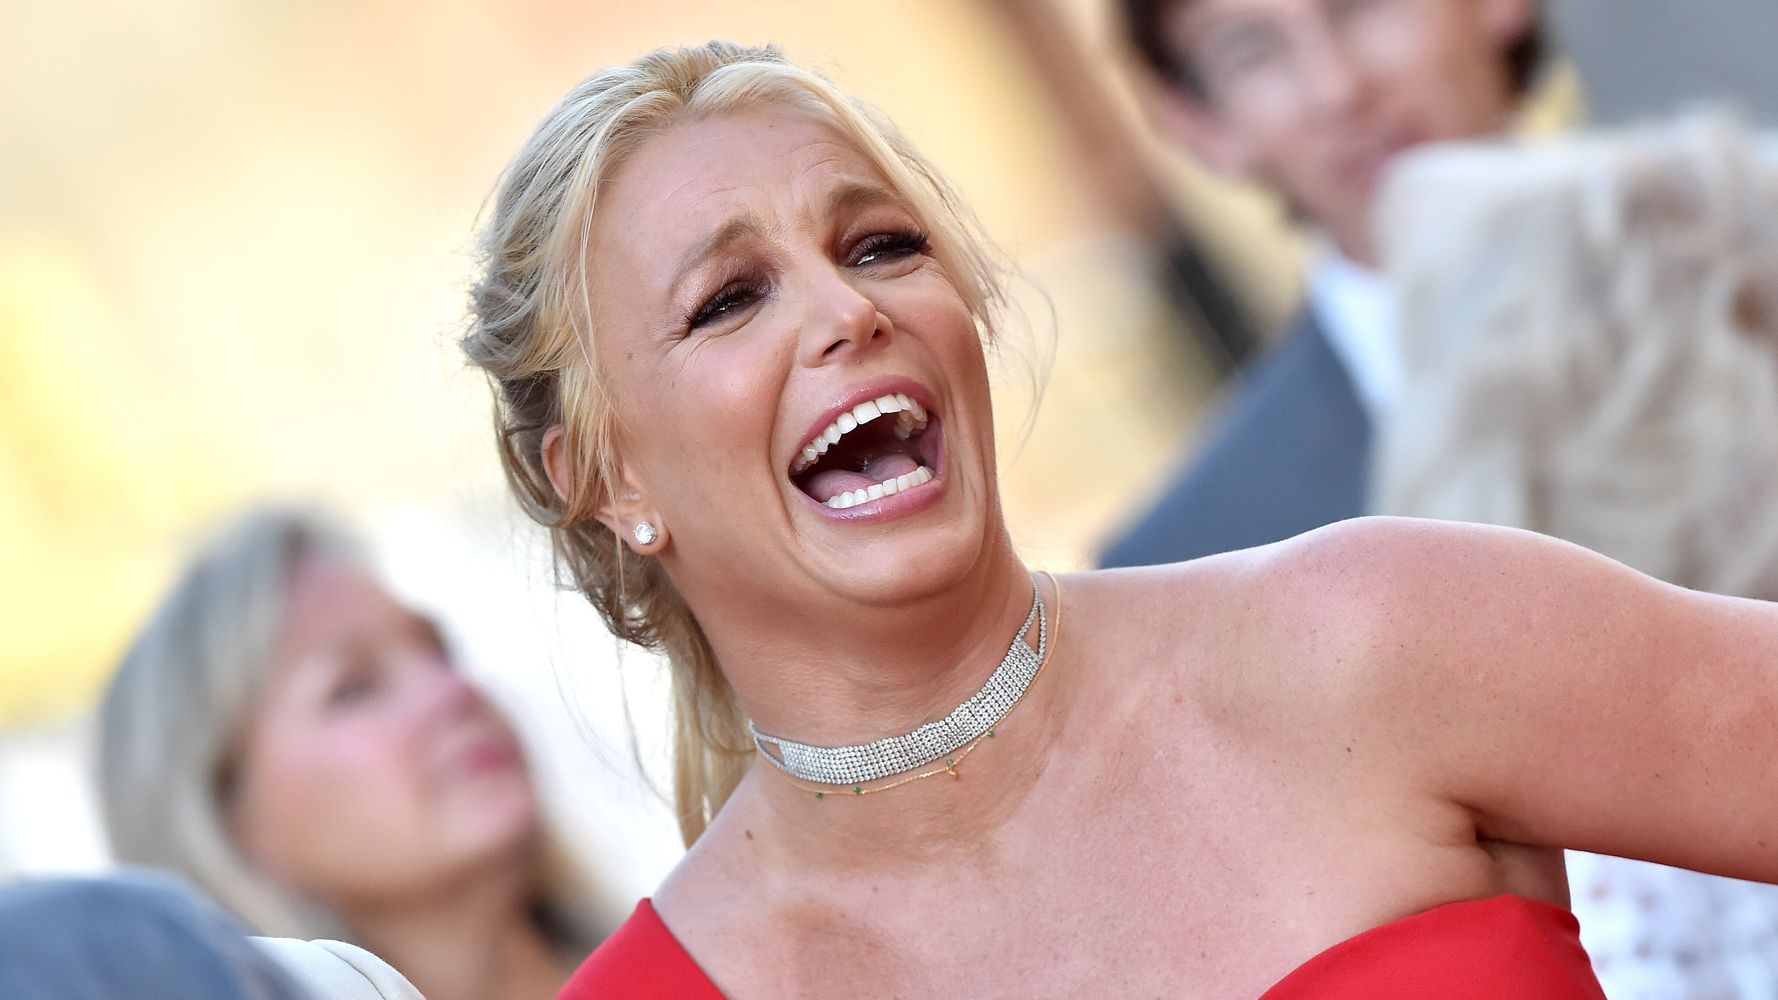 Judge officially suspends Jamie Spears from Britney Spears' guardianship after 13 years